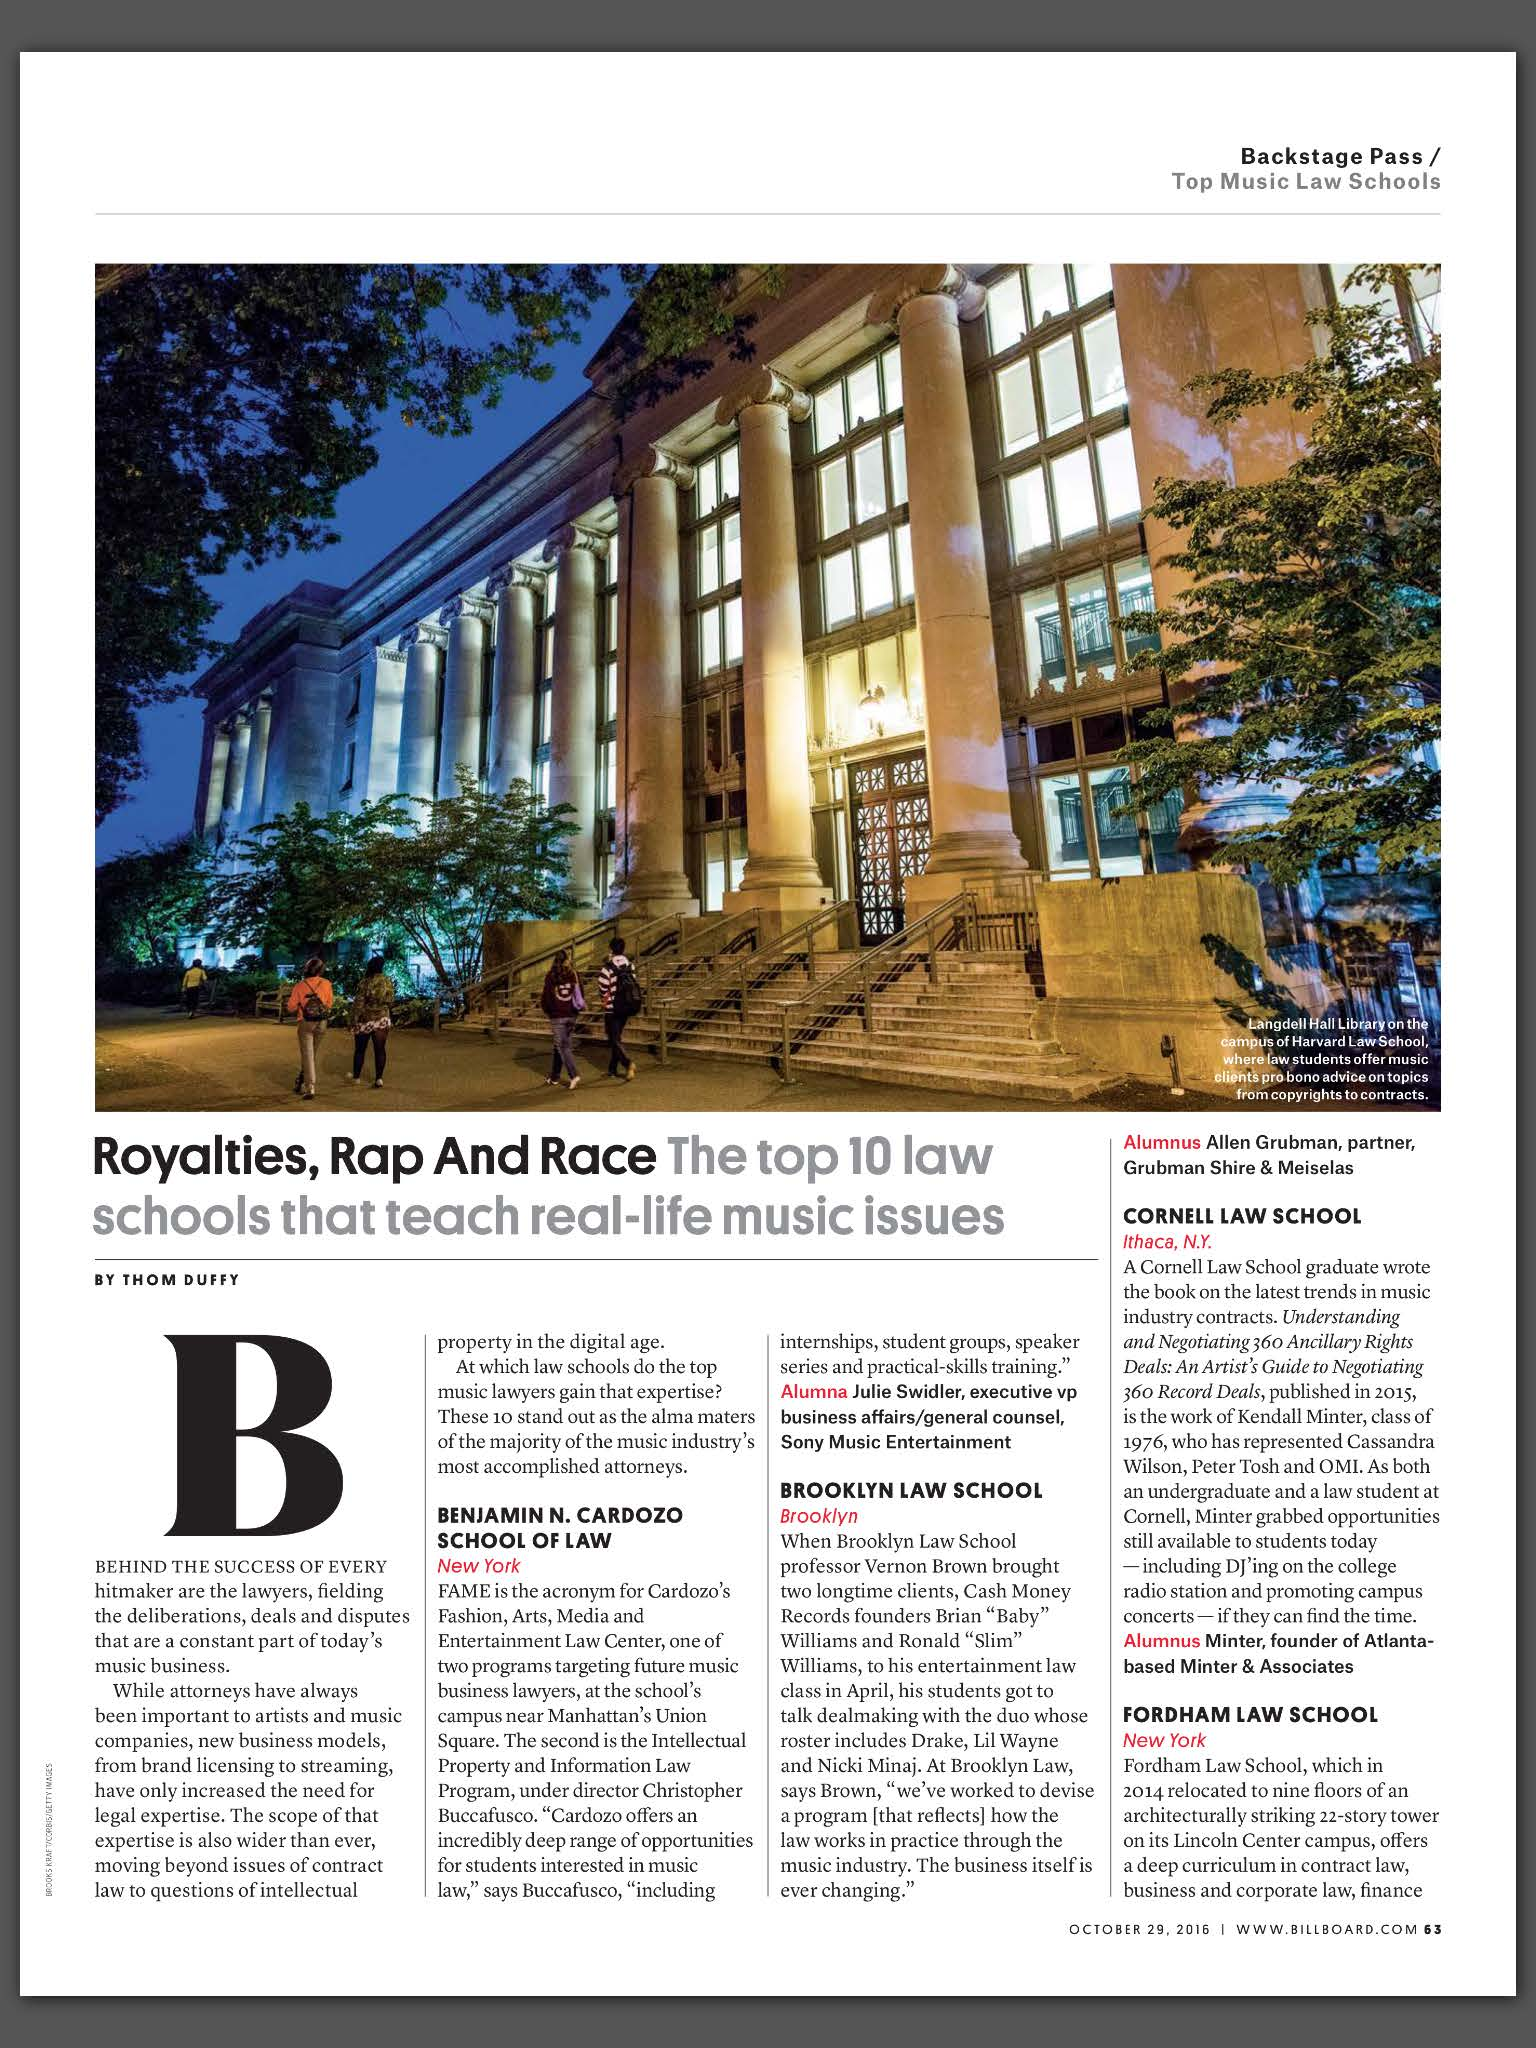 meis-music-law-in-billboard-top-schools-article-10-19-2016_page_1